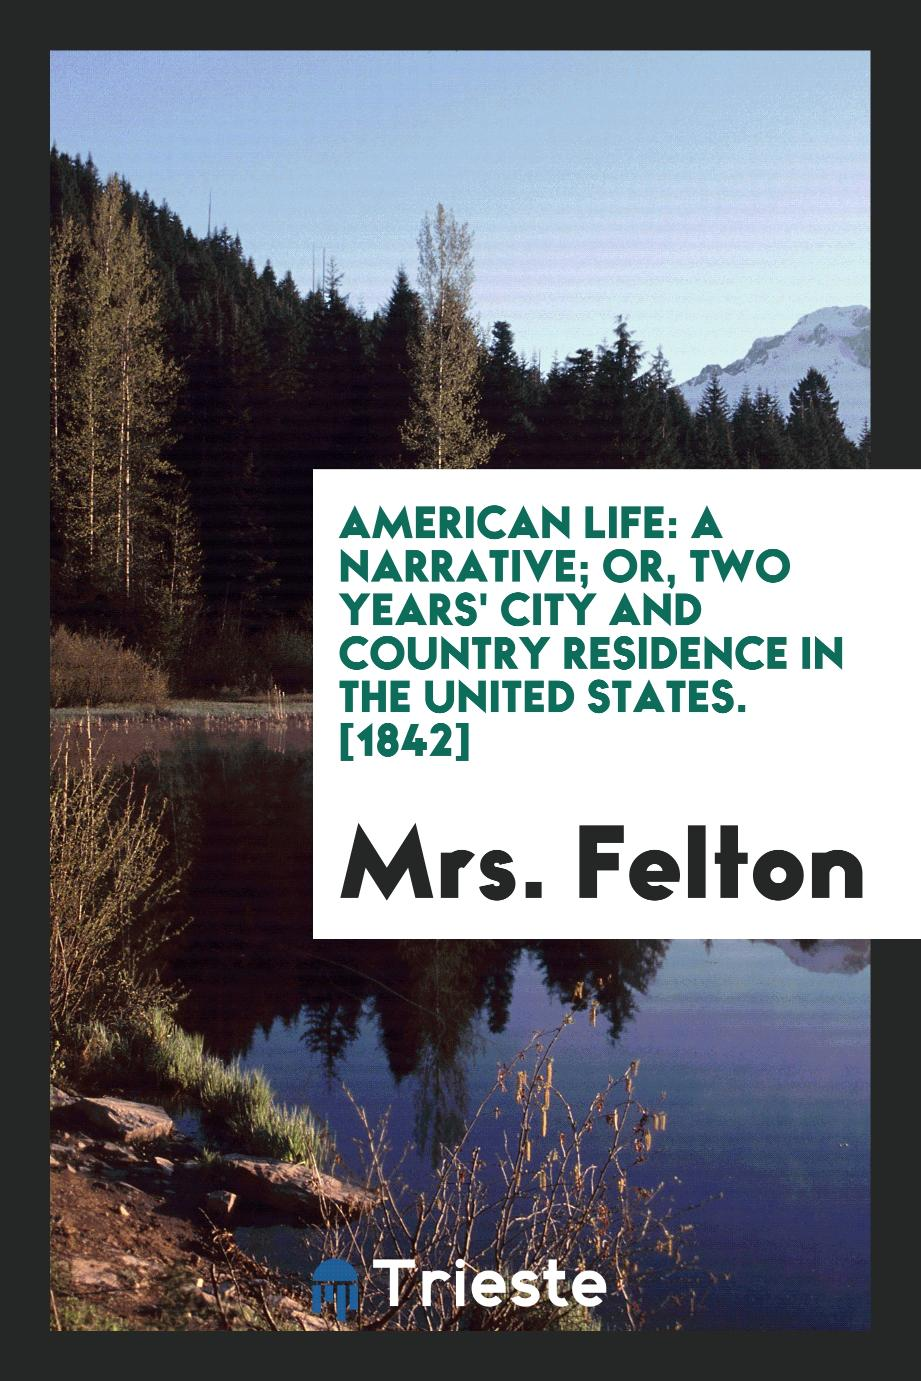 American Life: A Narrative; Or, Two Years' City and Country Residence in the United States. [1842]